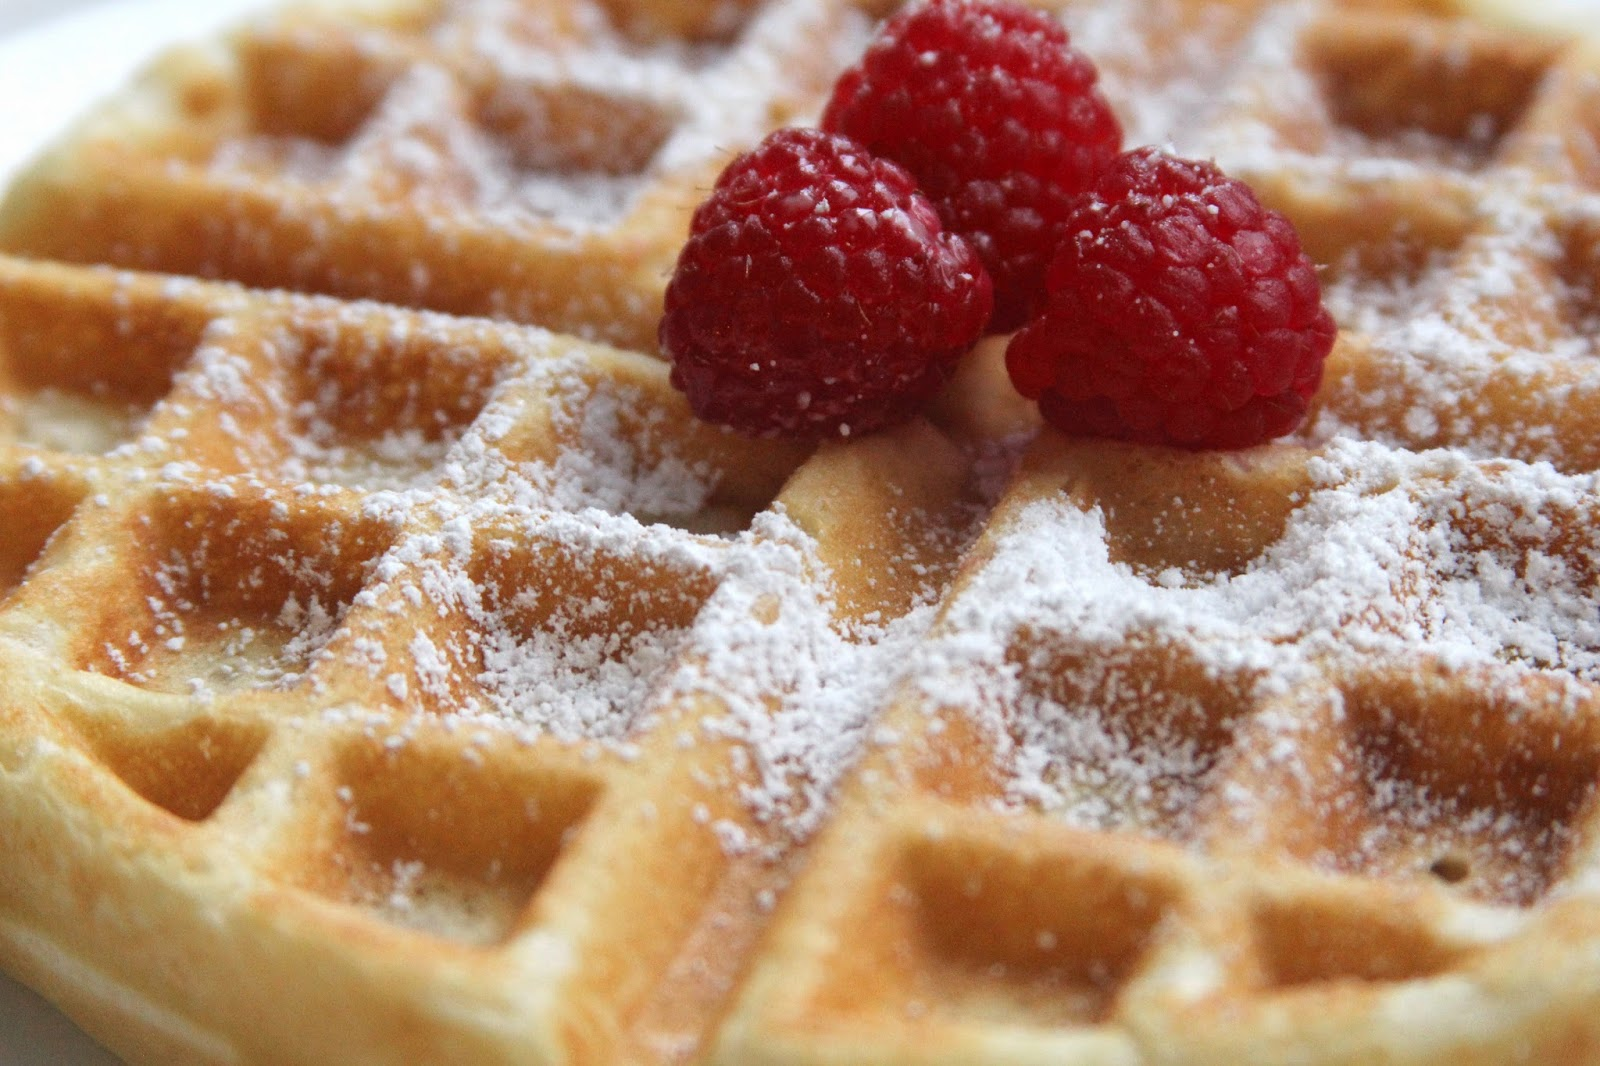 Classic Waffles from Scratch